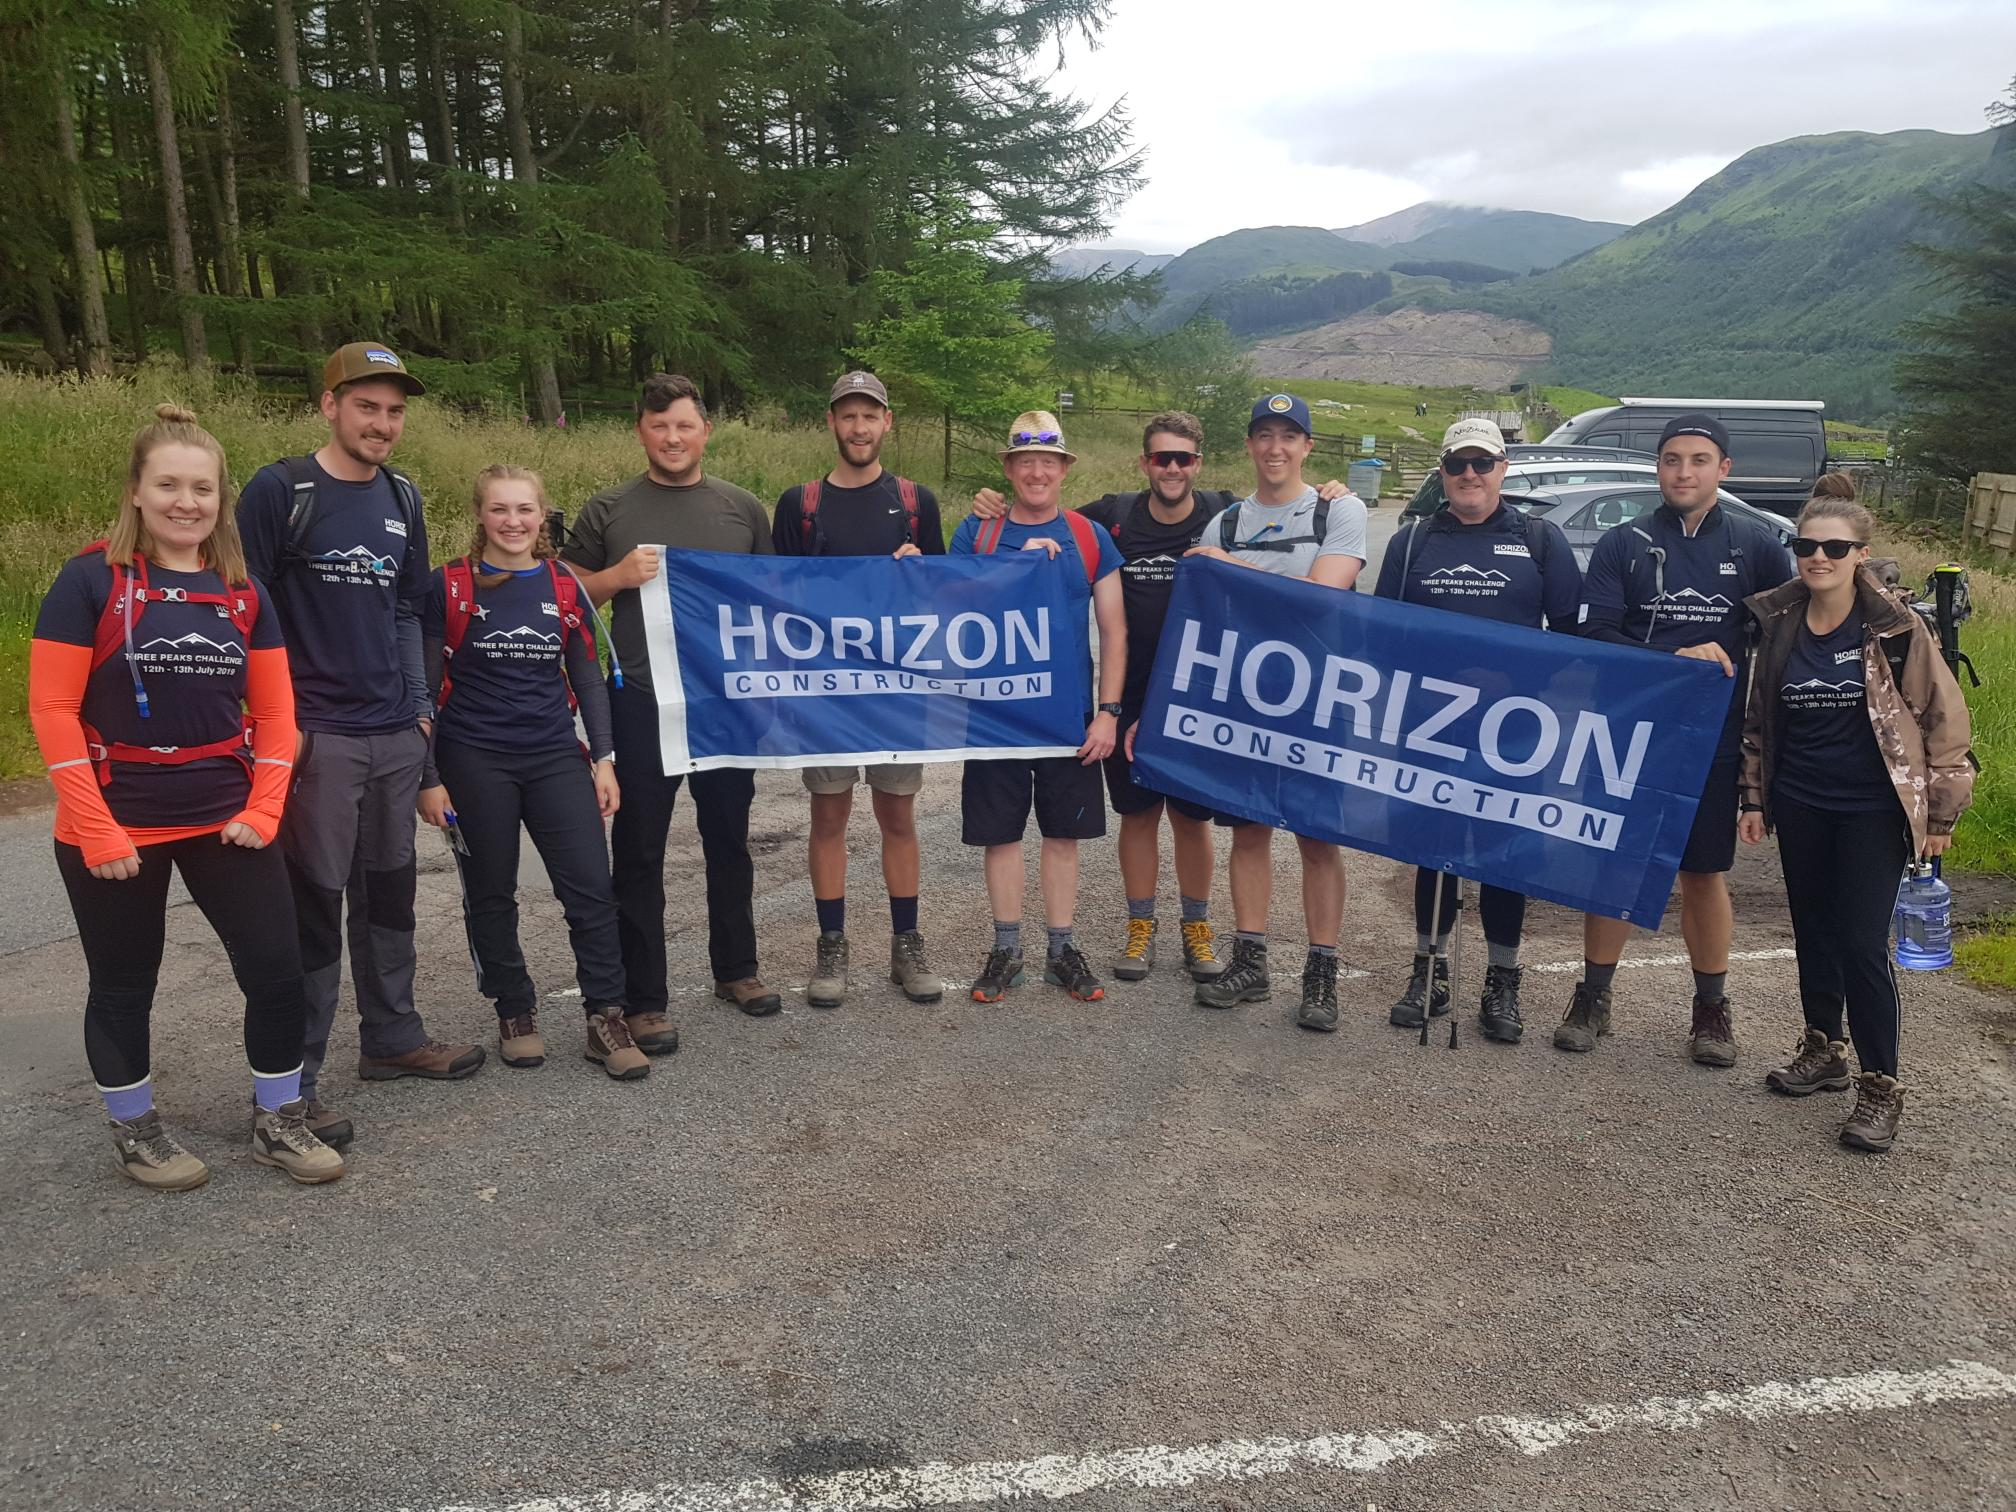 Three Peaks Challenge - Horizon Construction